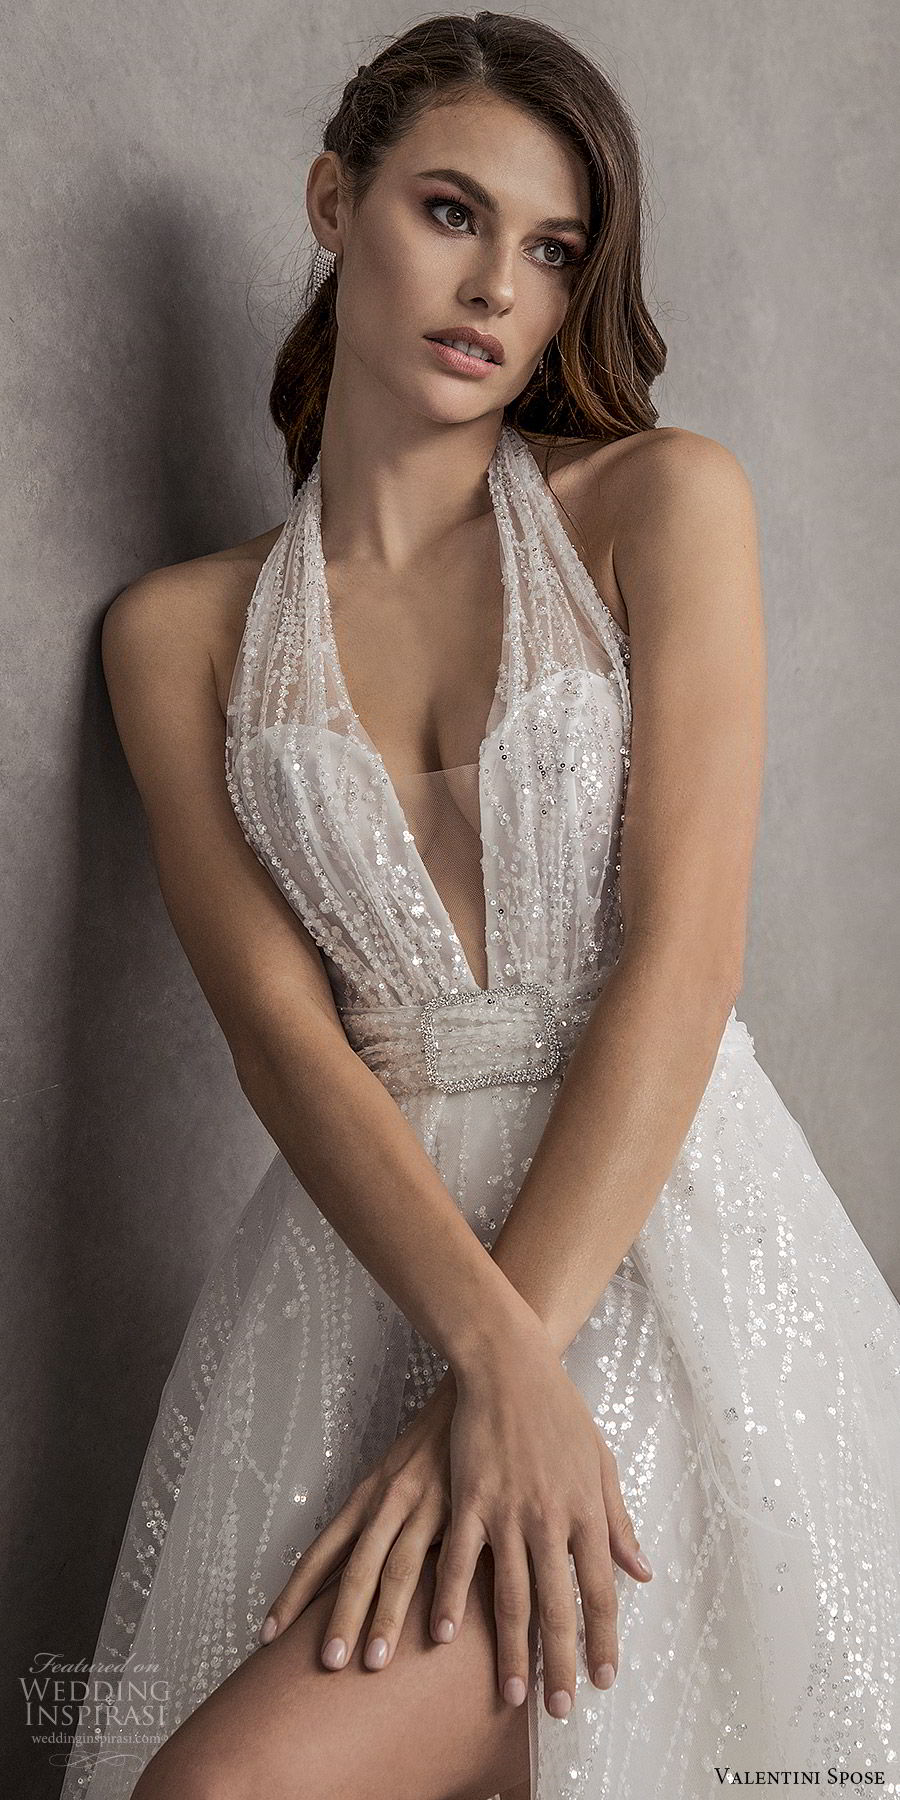 valentini spose spring 2020 bridal sleeveless halter neck deep v neckline fully embellished a line ball gown wedding dress (13) chapel train glitzy romantic glam mv